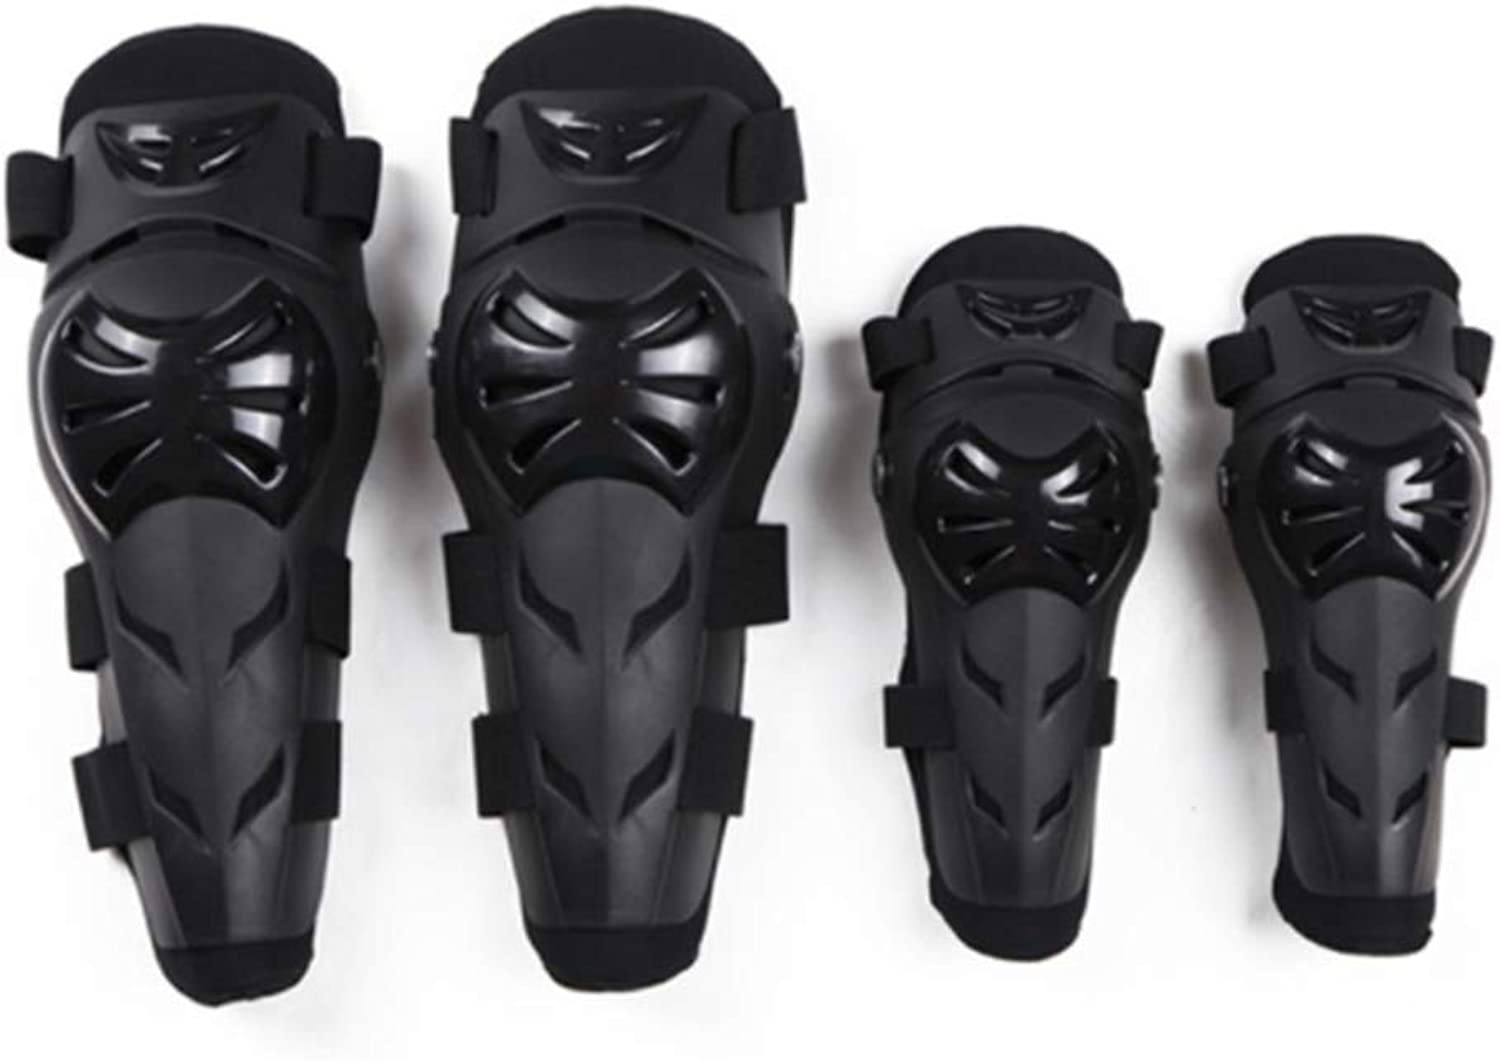 Sububblepper Motorcycle Motocross Cycling Elbow and Knee Pads Predector Guard Armors Set for Riding Cycling Skating4pcs